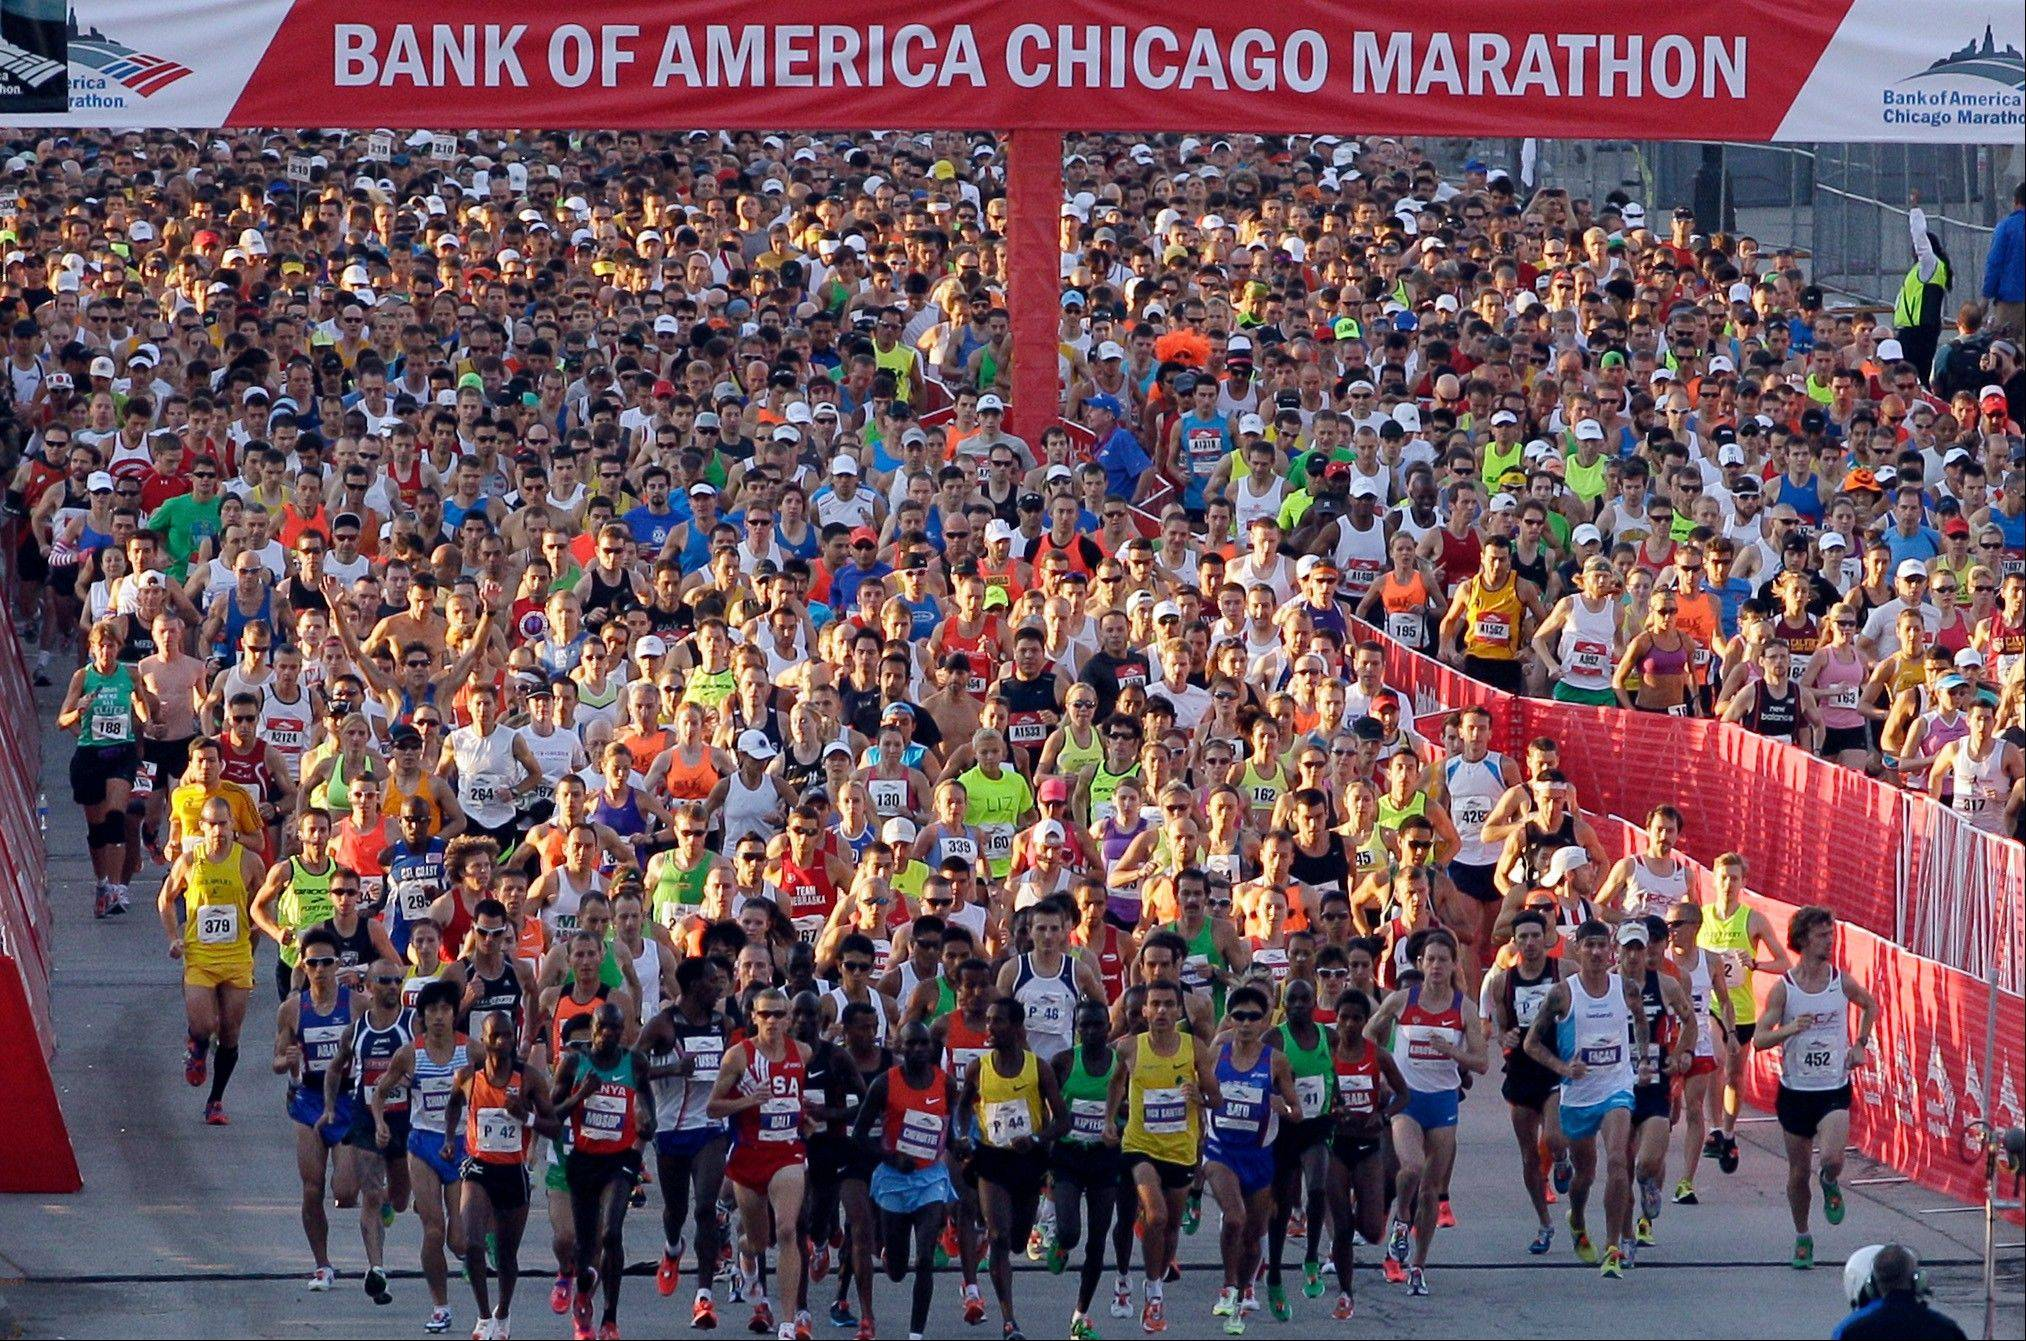 The 35th Chicago Marathon will get under way Oct. 7, and registration for the field of 45,000 runners closed in record time Monday.